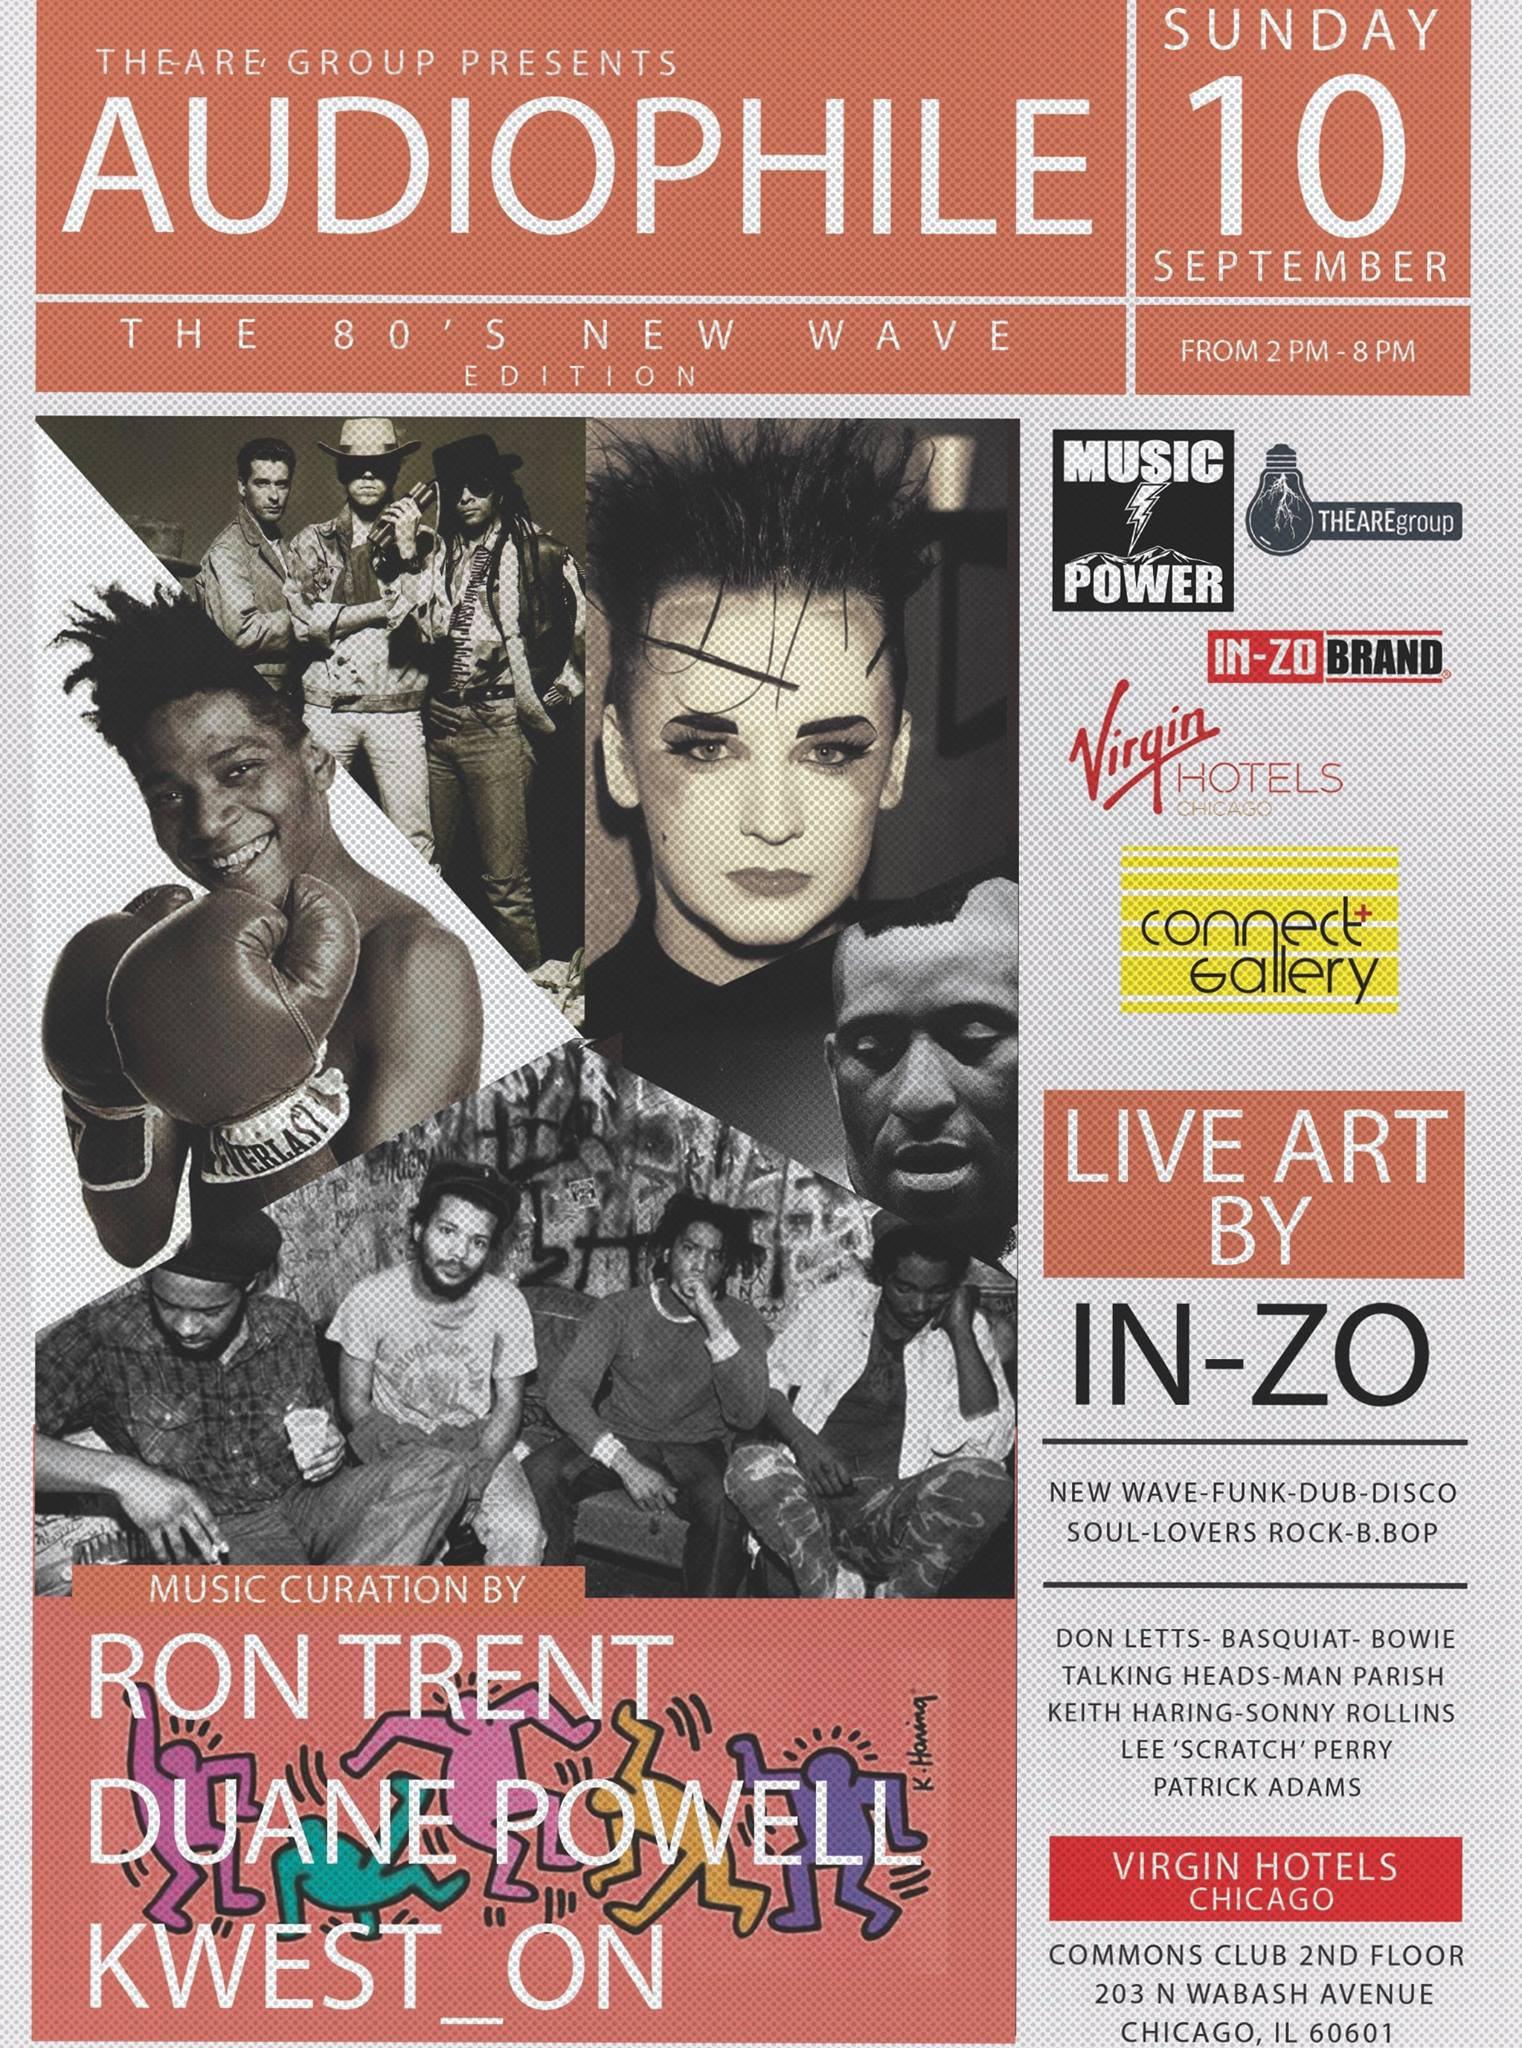 Audiophile 80s New Wave @ Cerise Rooftop 10th Sept 2017